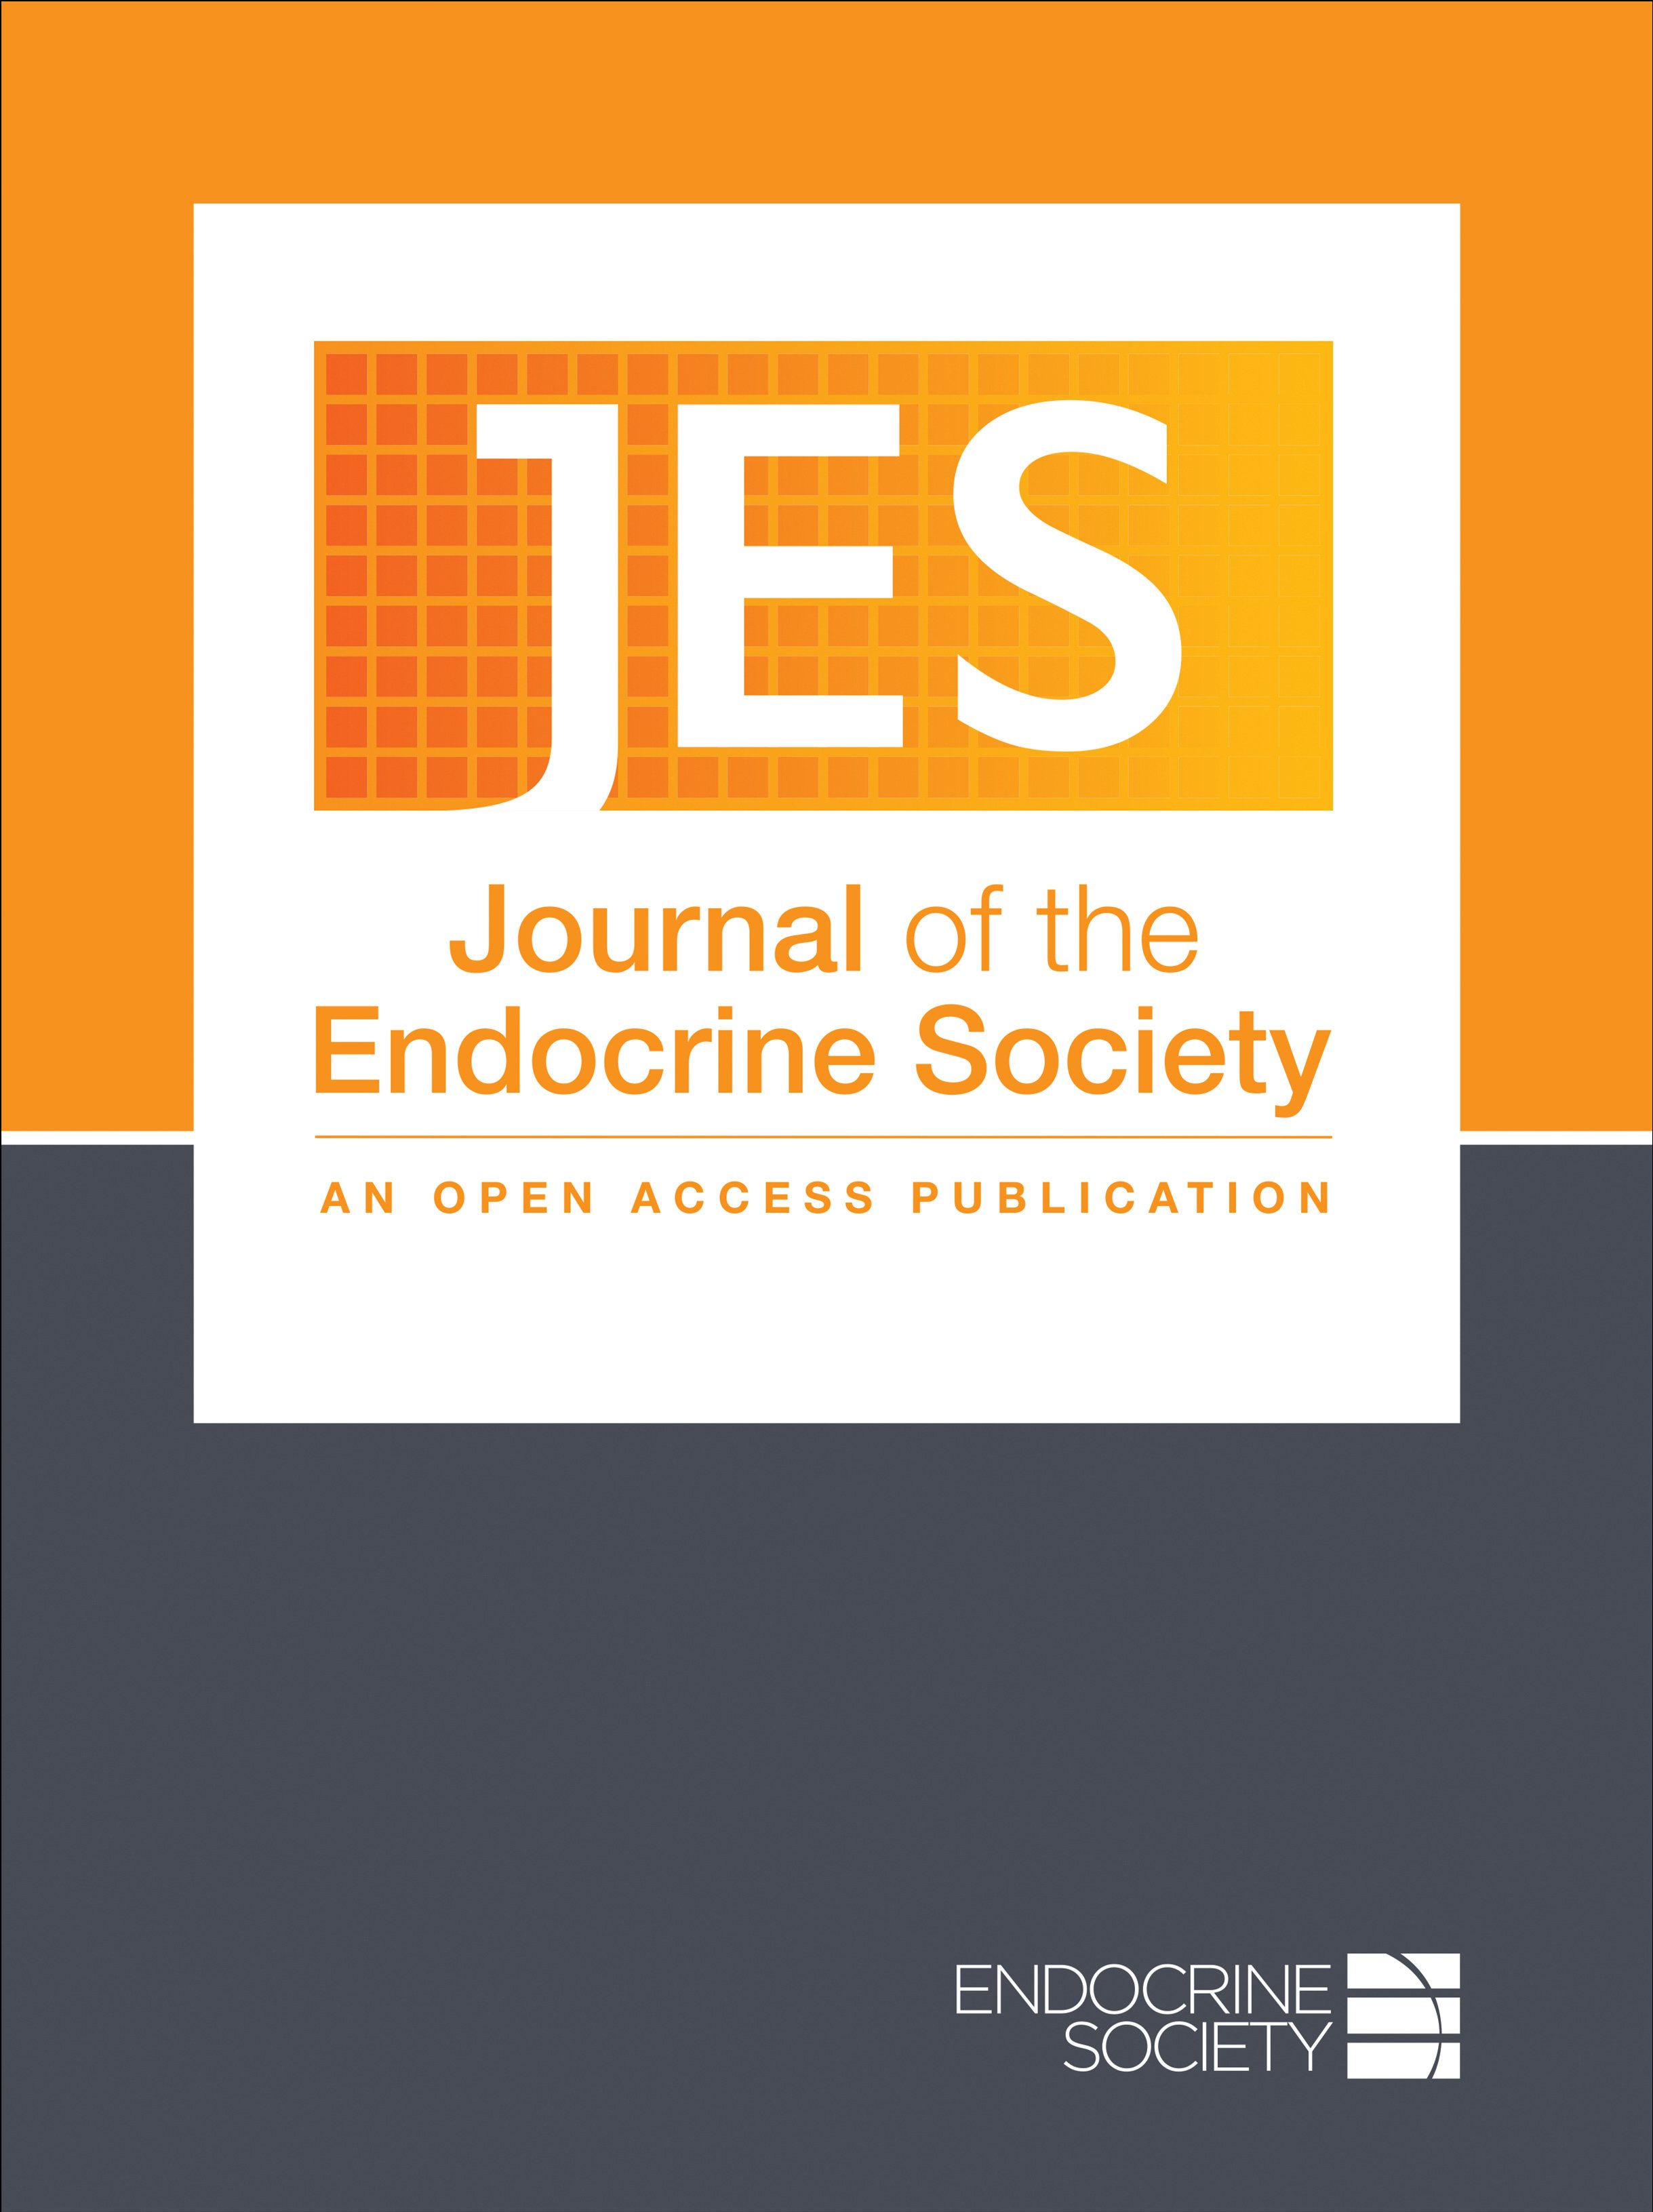 Journal of the Endocrine Society